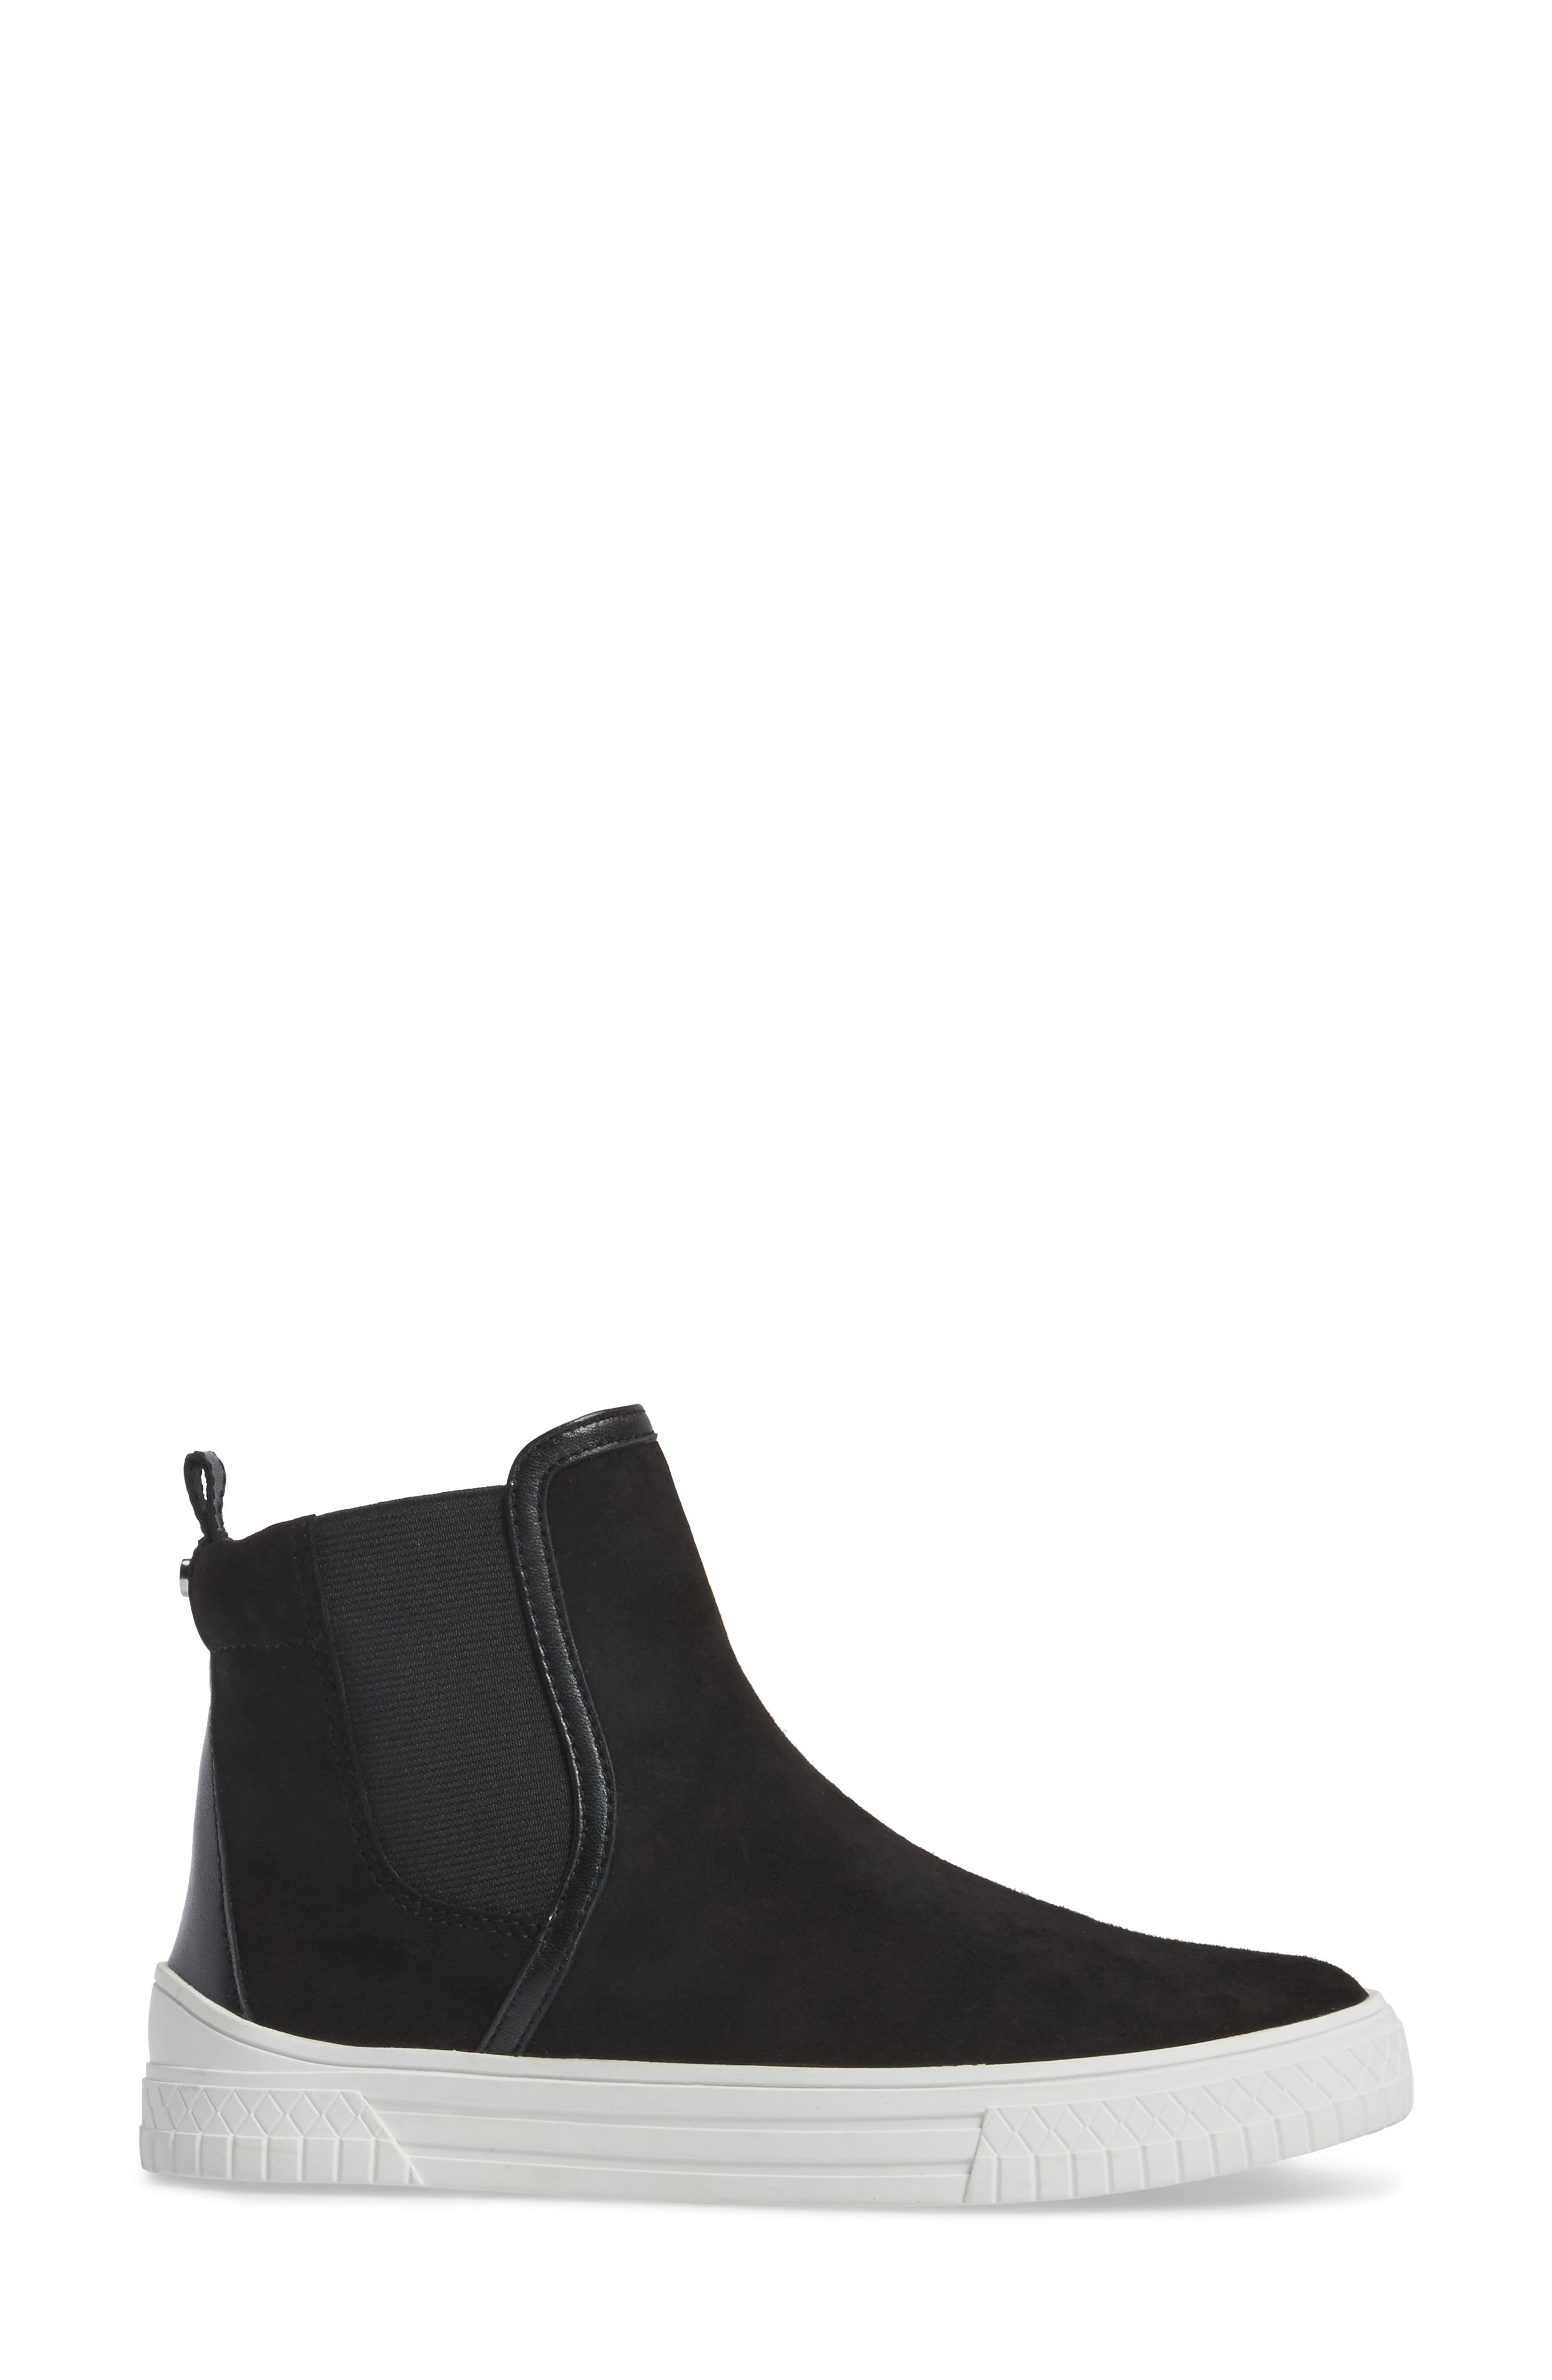 Gage Chelsea Boot,                             Alternate thumbnail 3, color,                             007